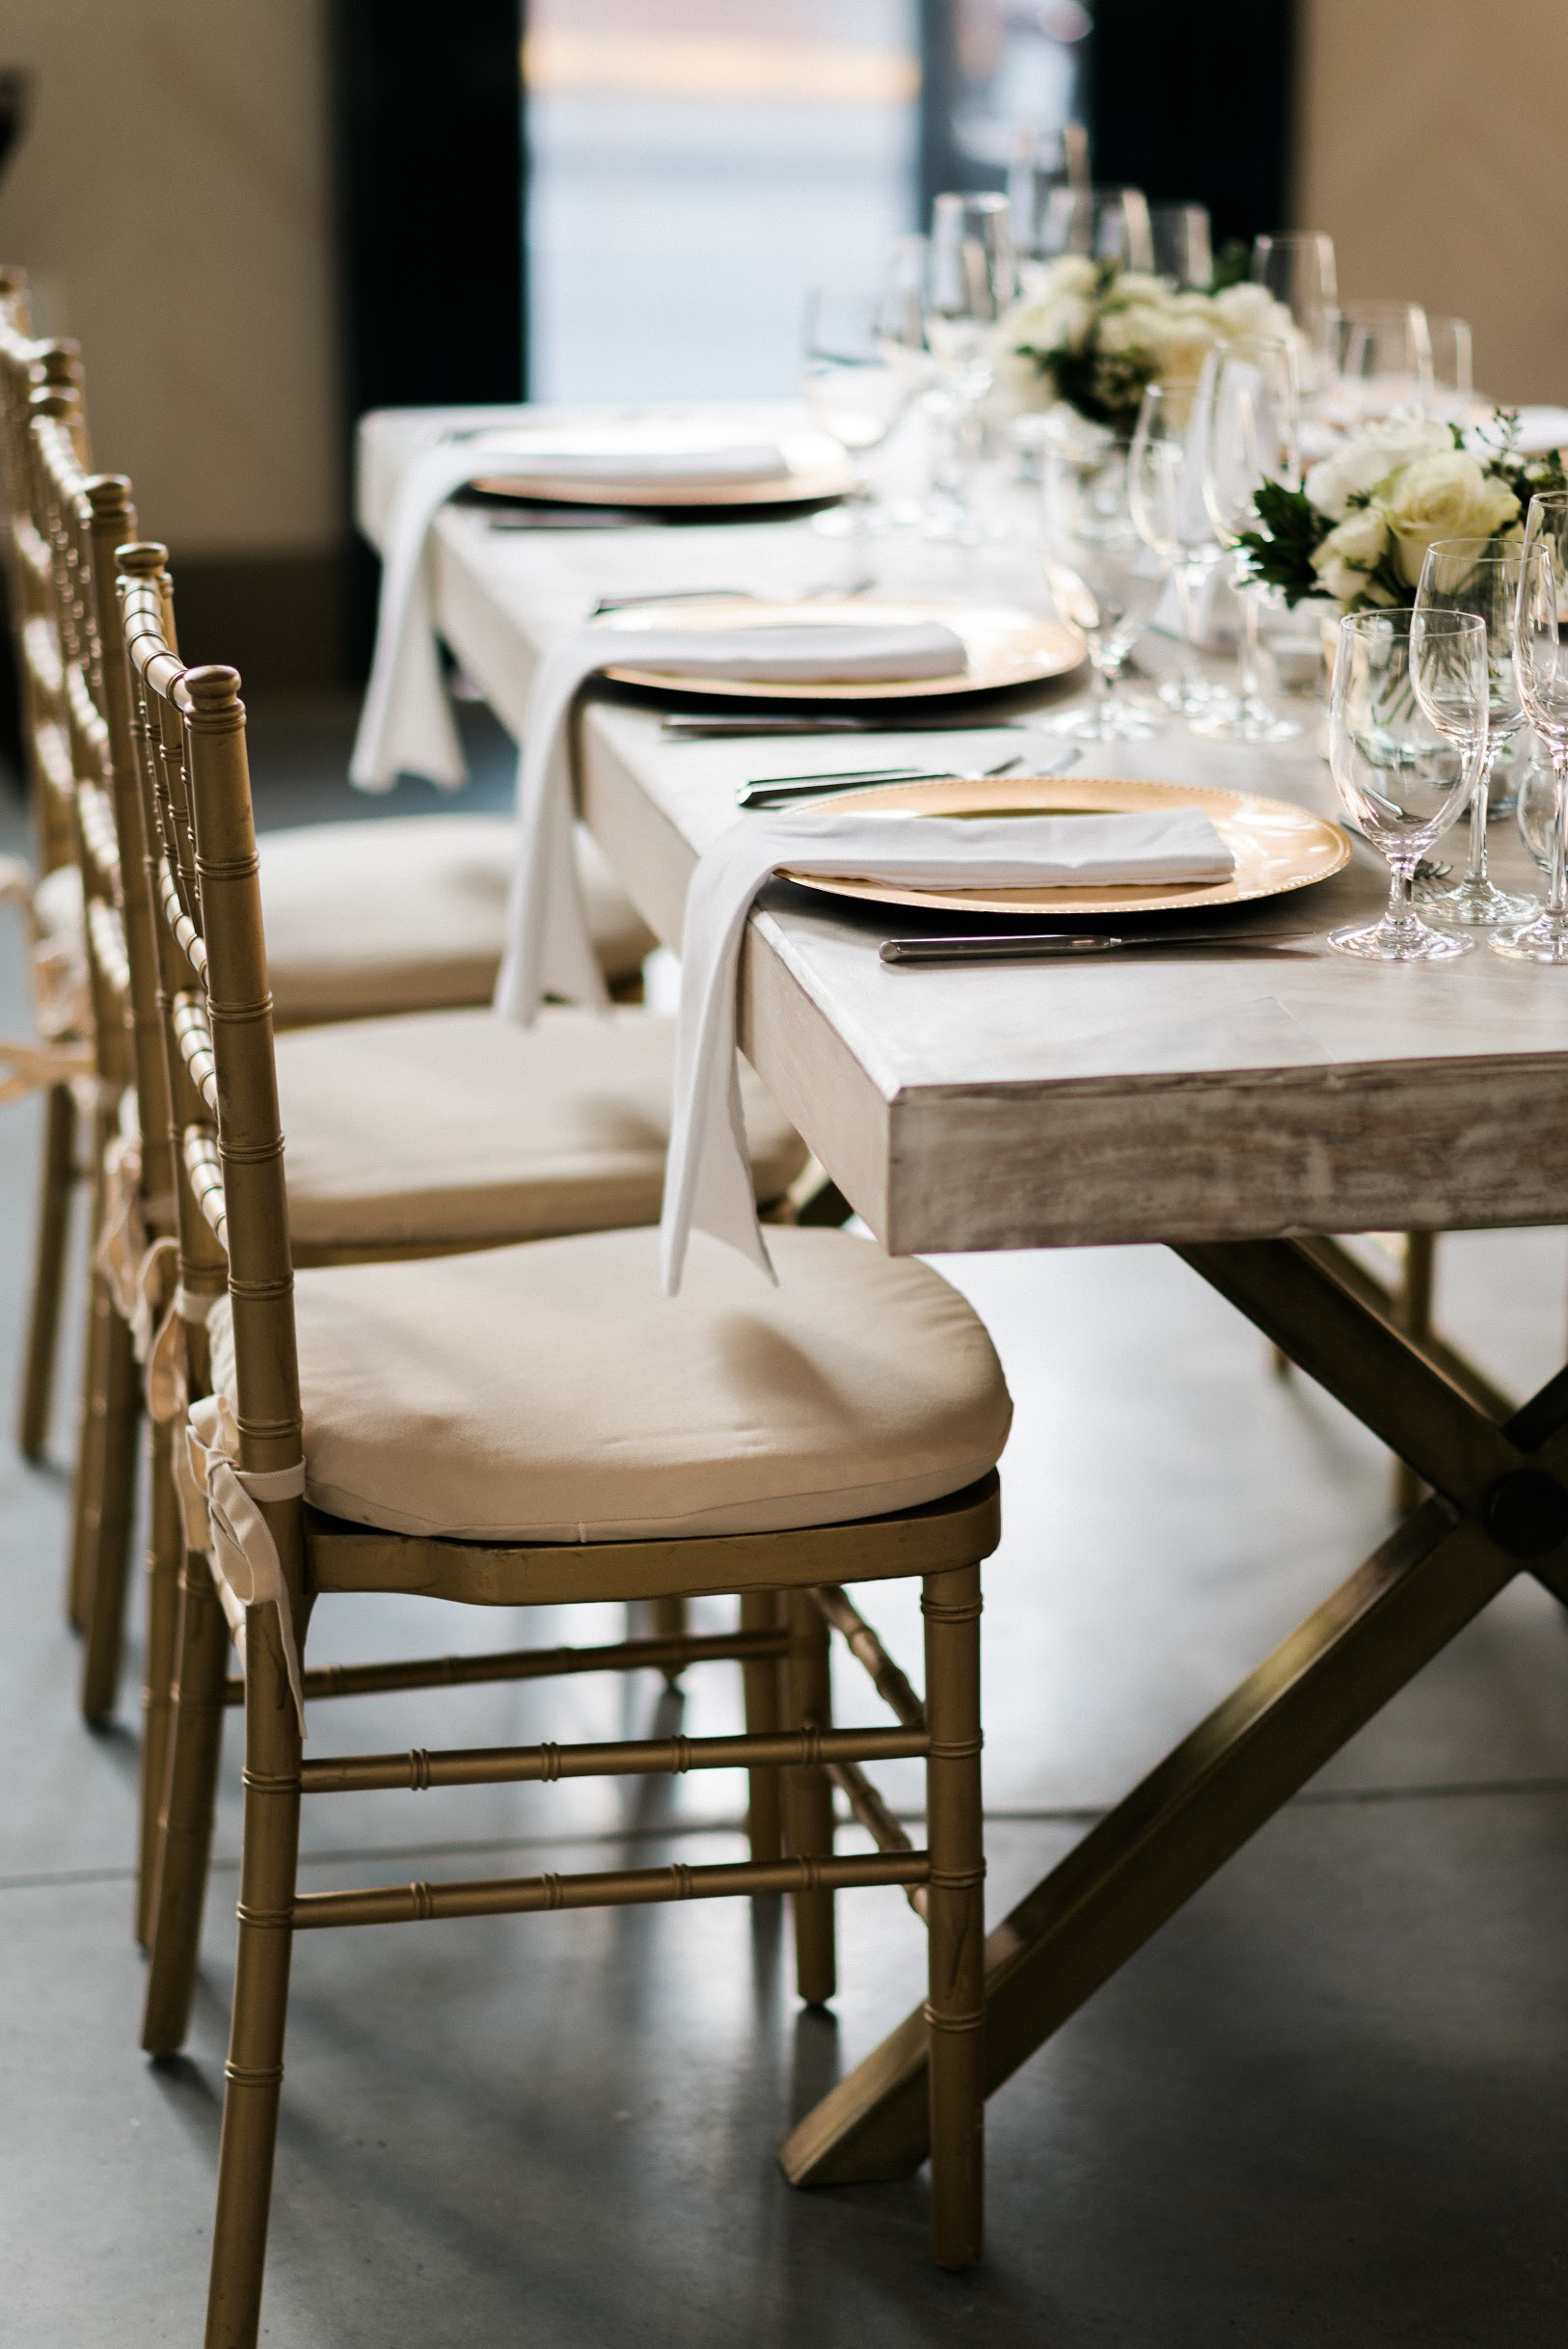 White washed wooden table set for a rehearsal dinner in The Patton Room